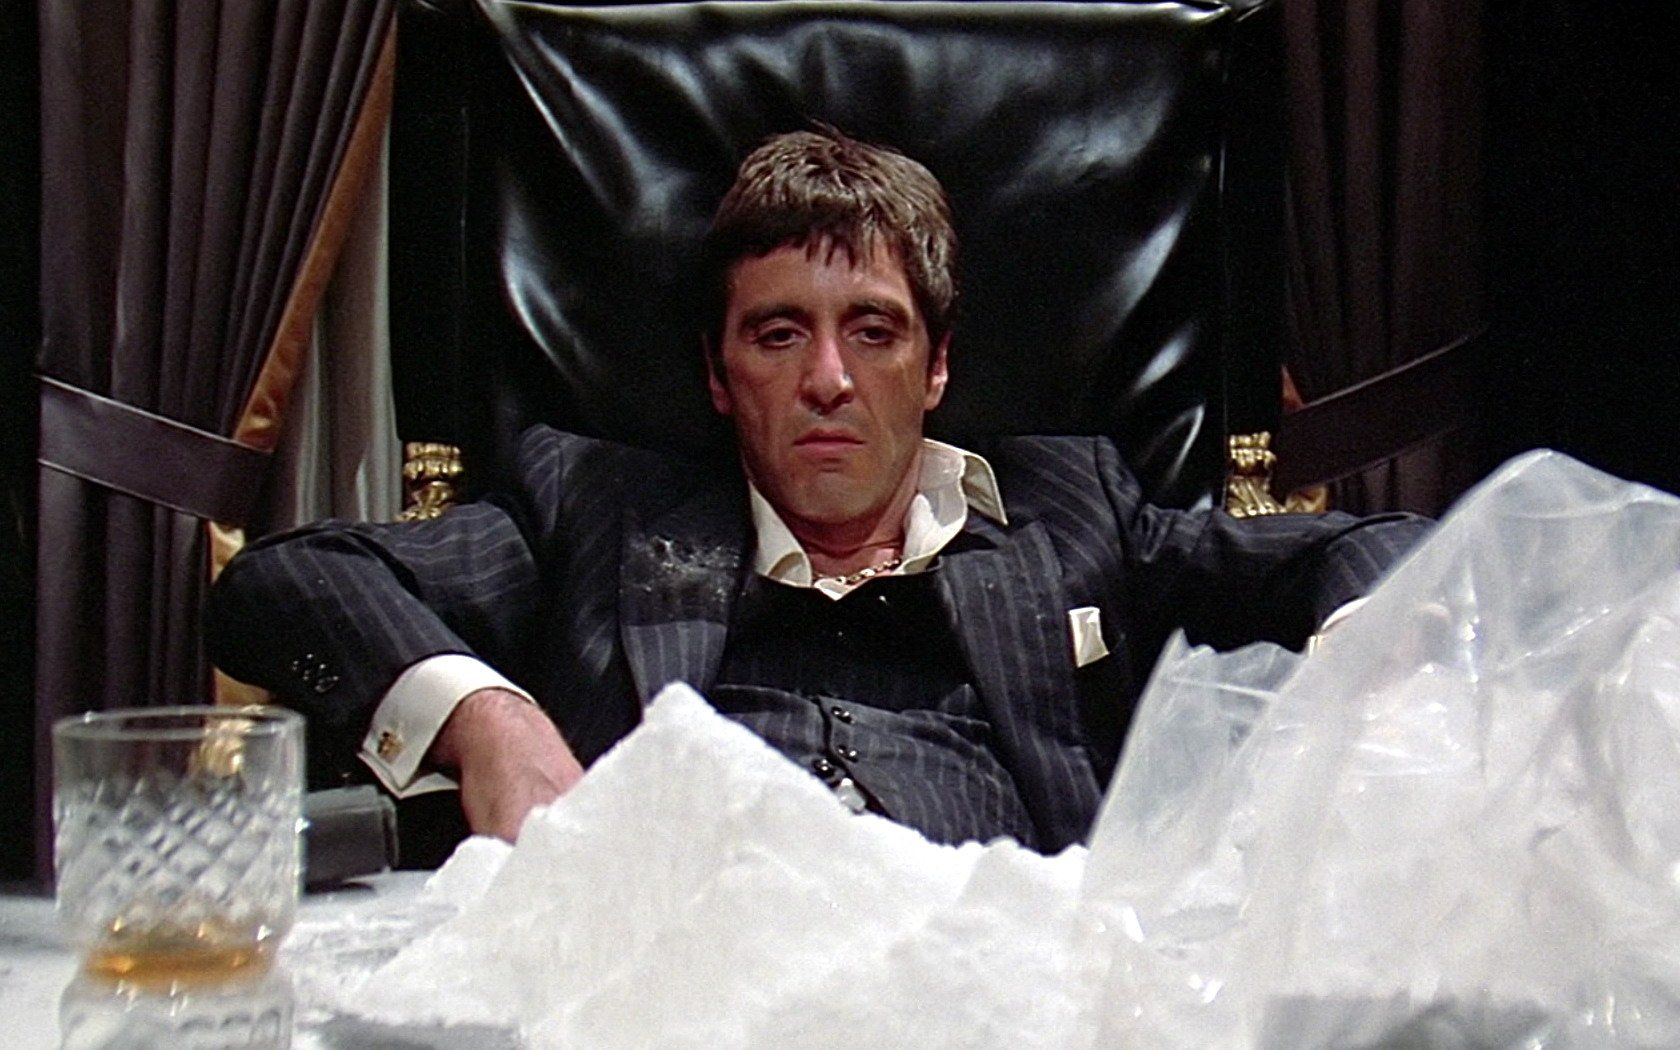 1680x1050 Scarface is getting a remake | The Independent